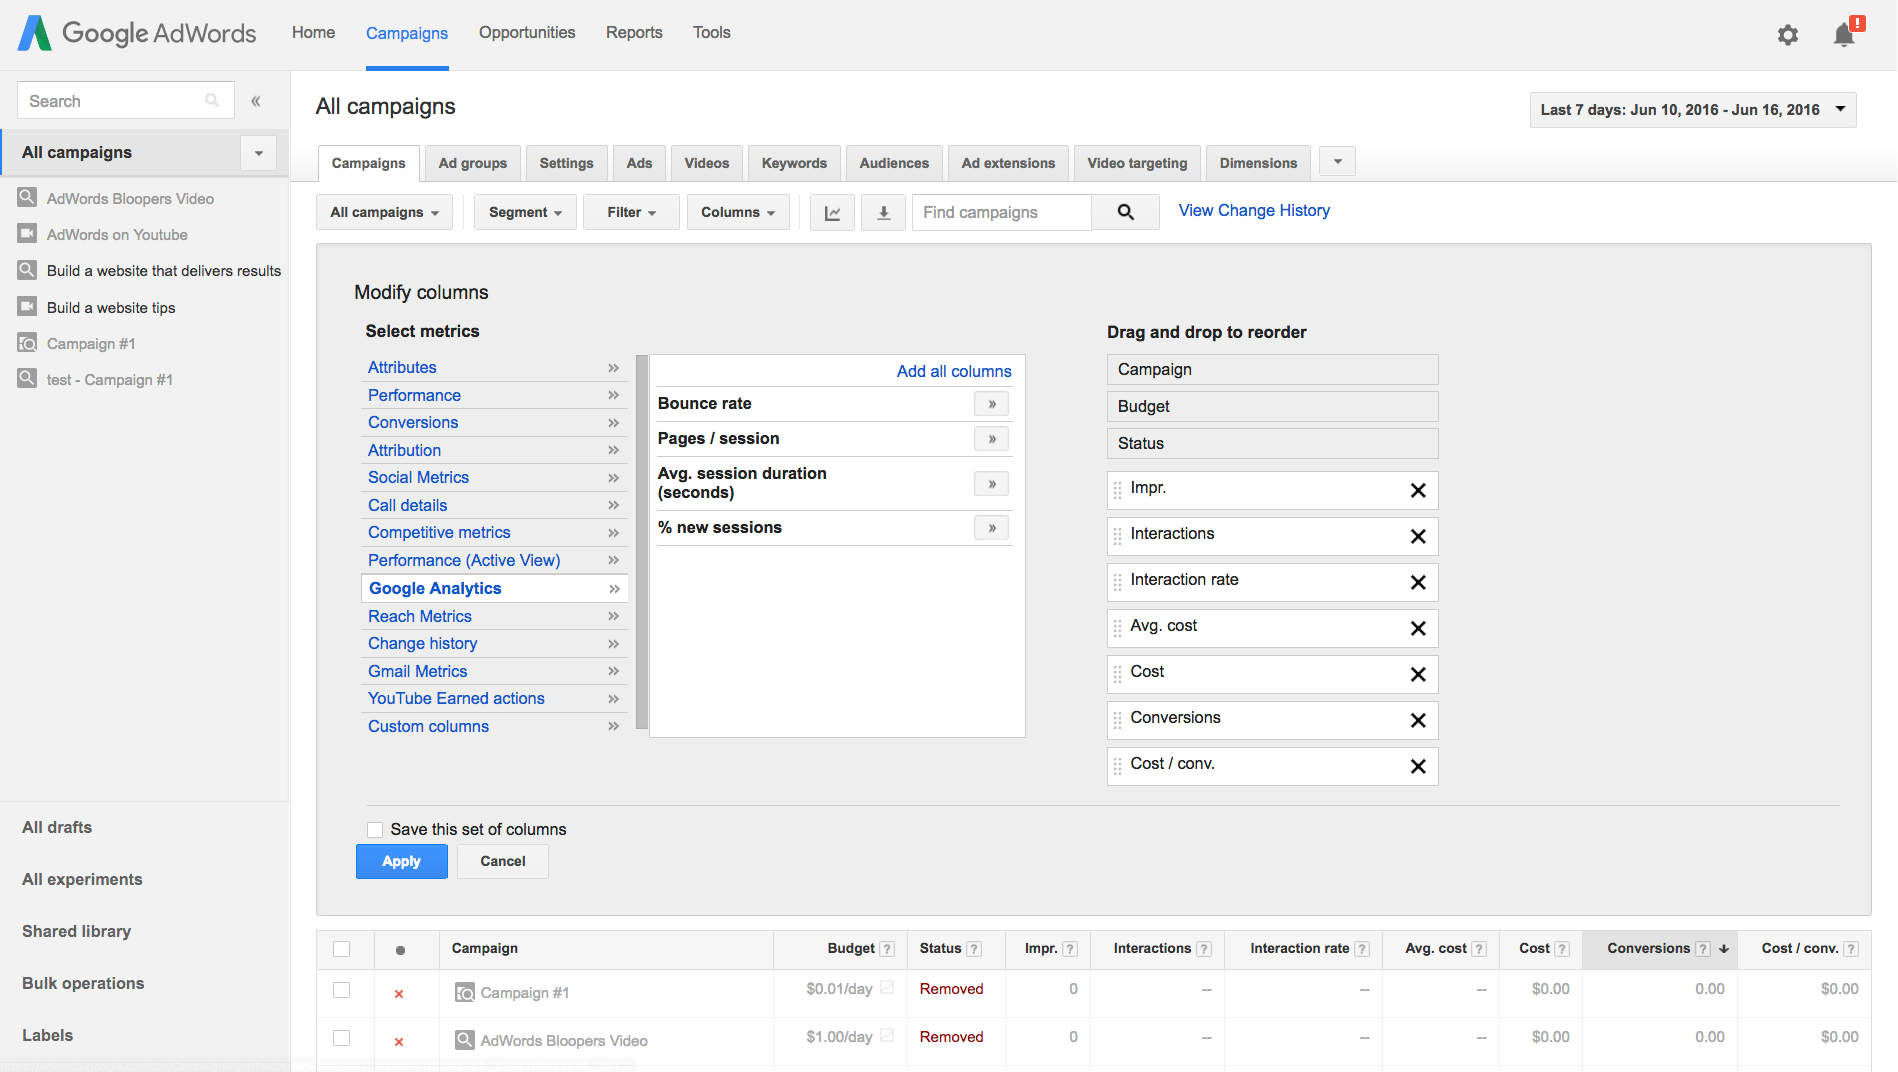 Select Google Analytics in Modify columns